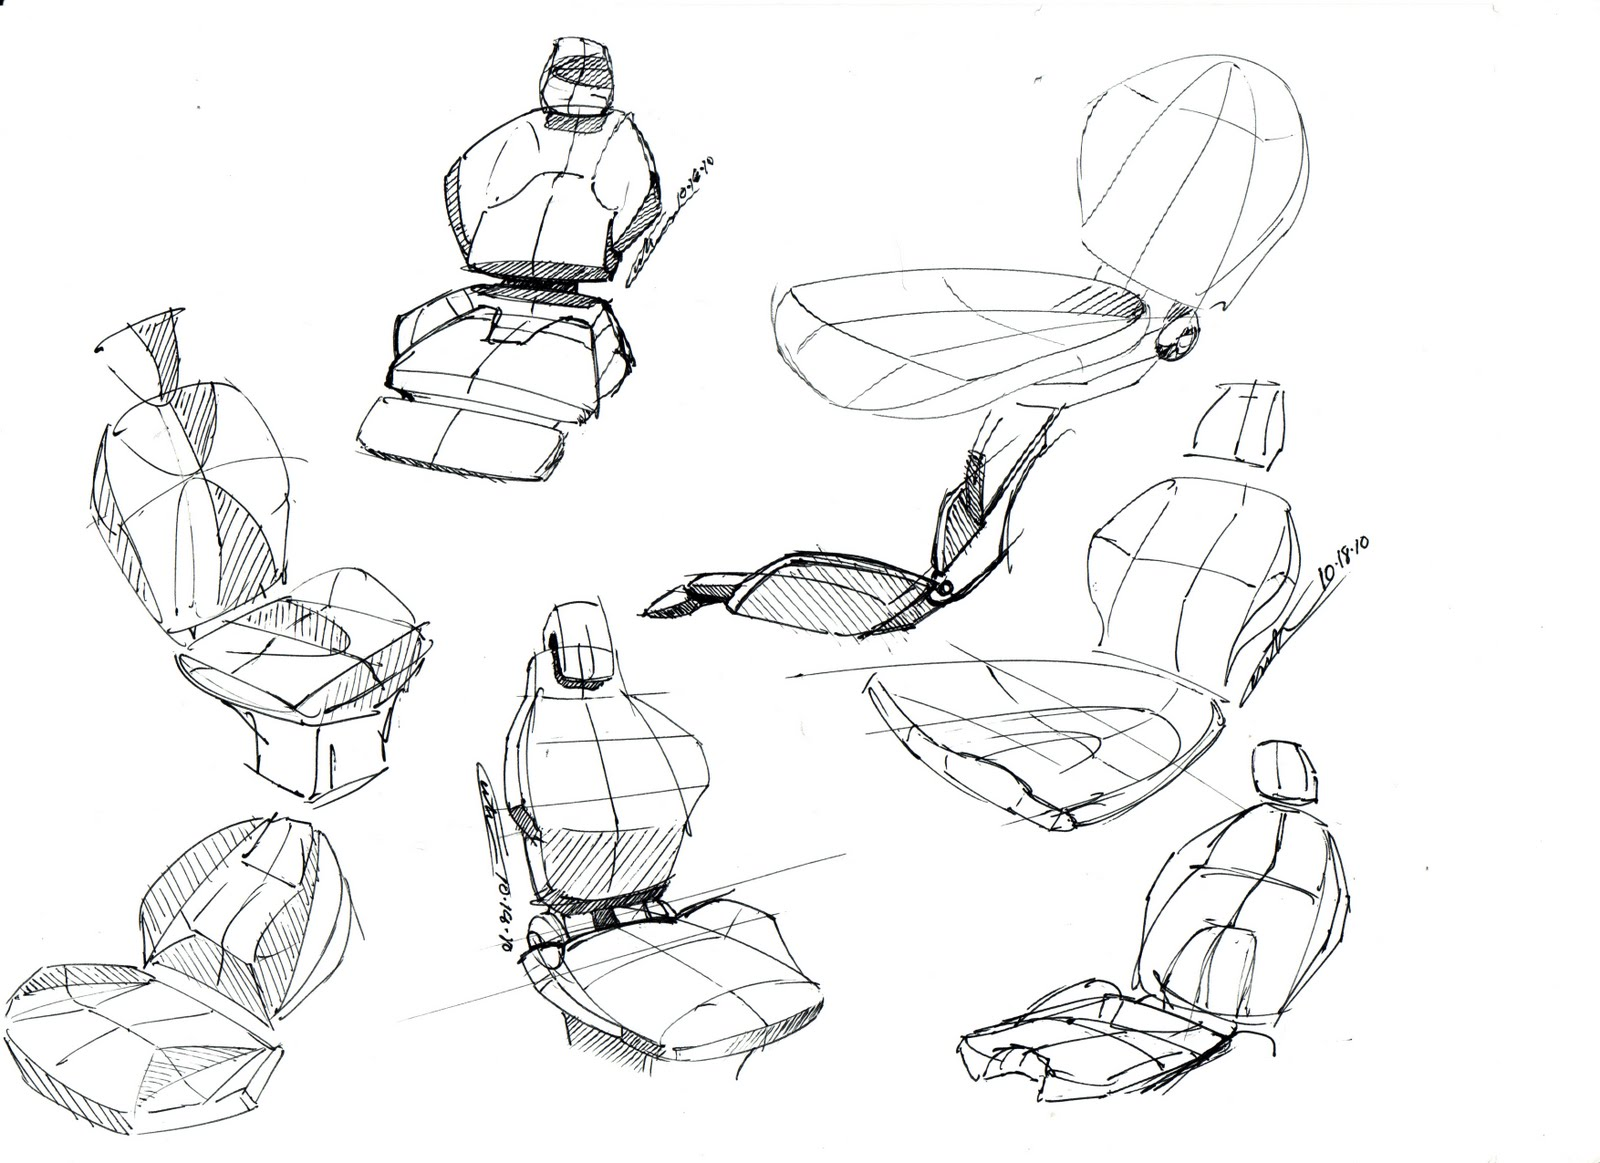 Custer Design Works Early Seat Sketches For A Class 8 Truck